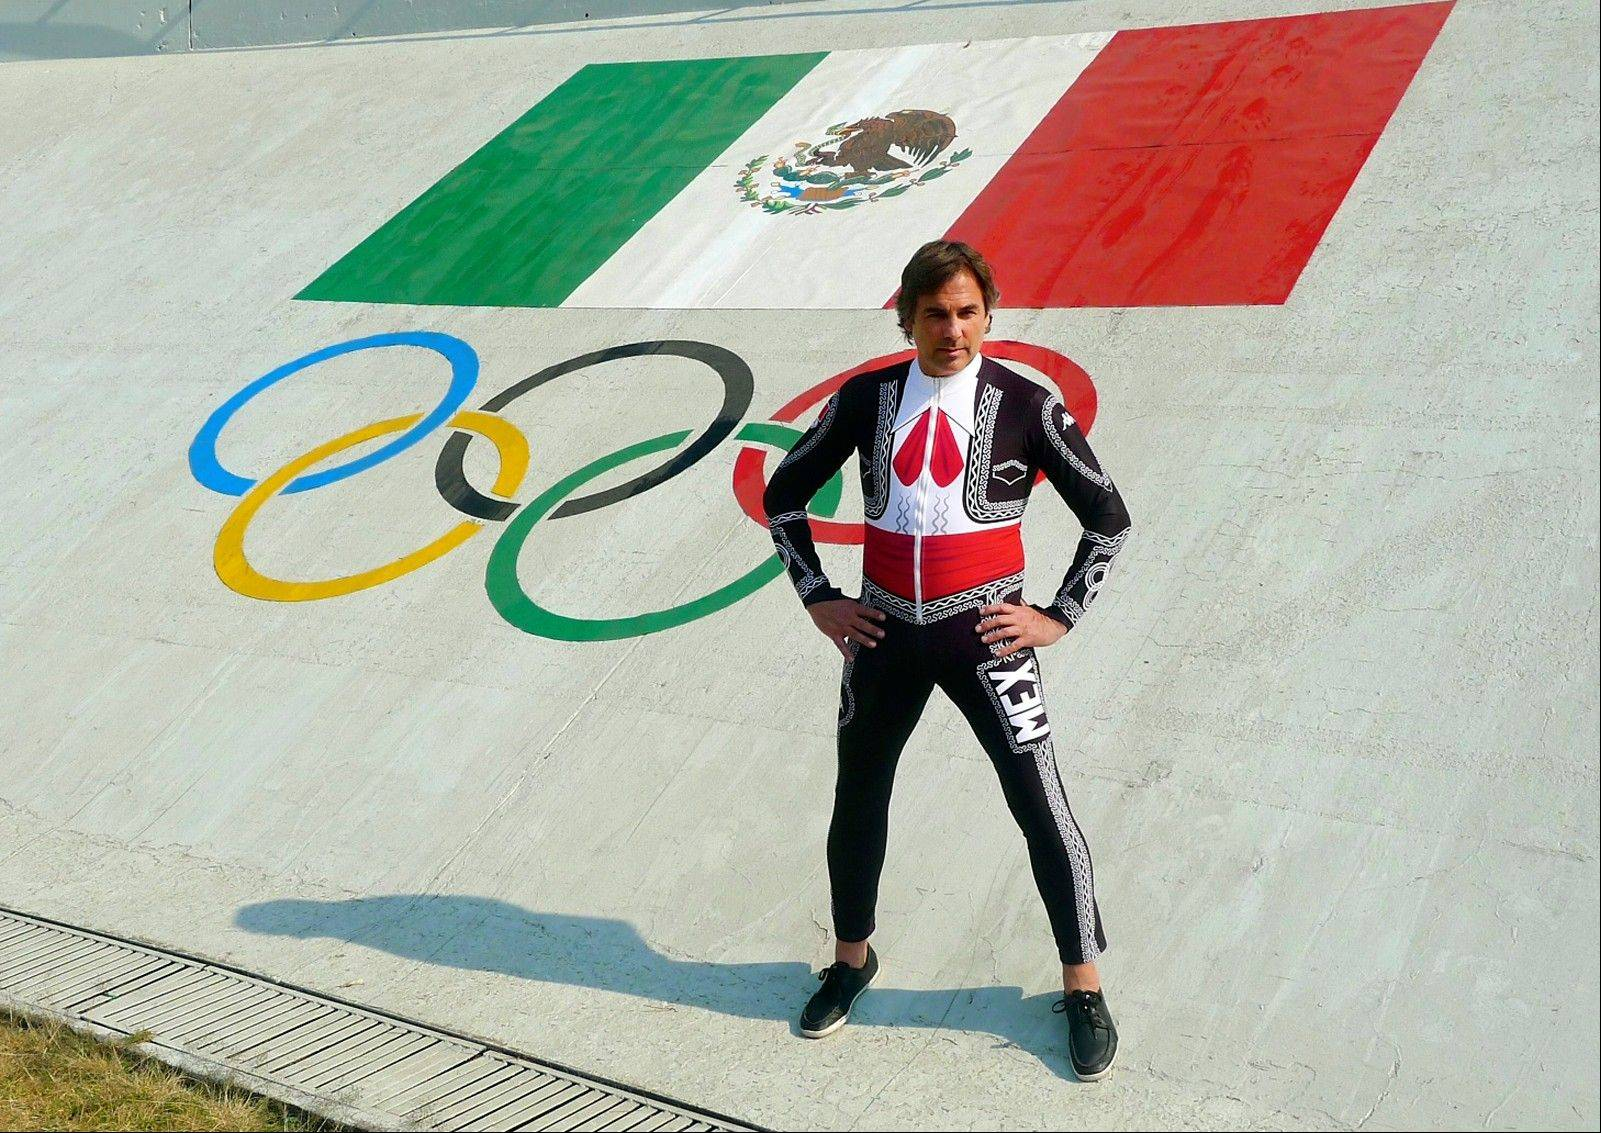 Mexico skier Hubertus Von Hohenlohe wearing his Marachi speed suit. Von Hohenlohe certainly won�t be hard to miss on the slopes at the Sochi Games. The 55-year-old German prince will be the one wearing a flamboyant Mariachi speed suit as he competes for Mexico. Born in Mexico City, he�s royalty because of his family�s blood line.